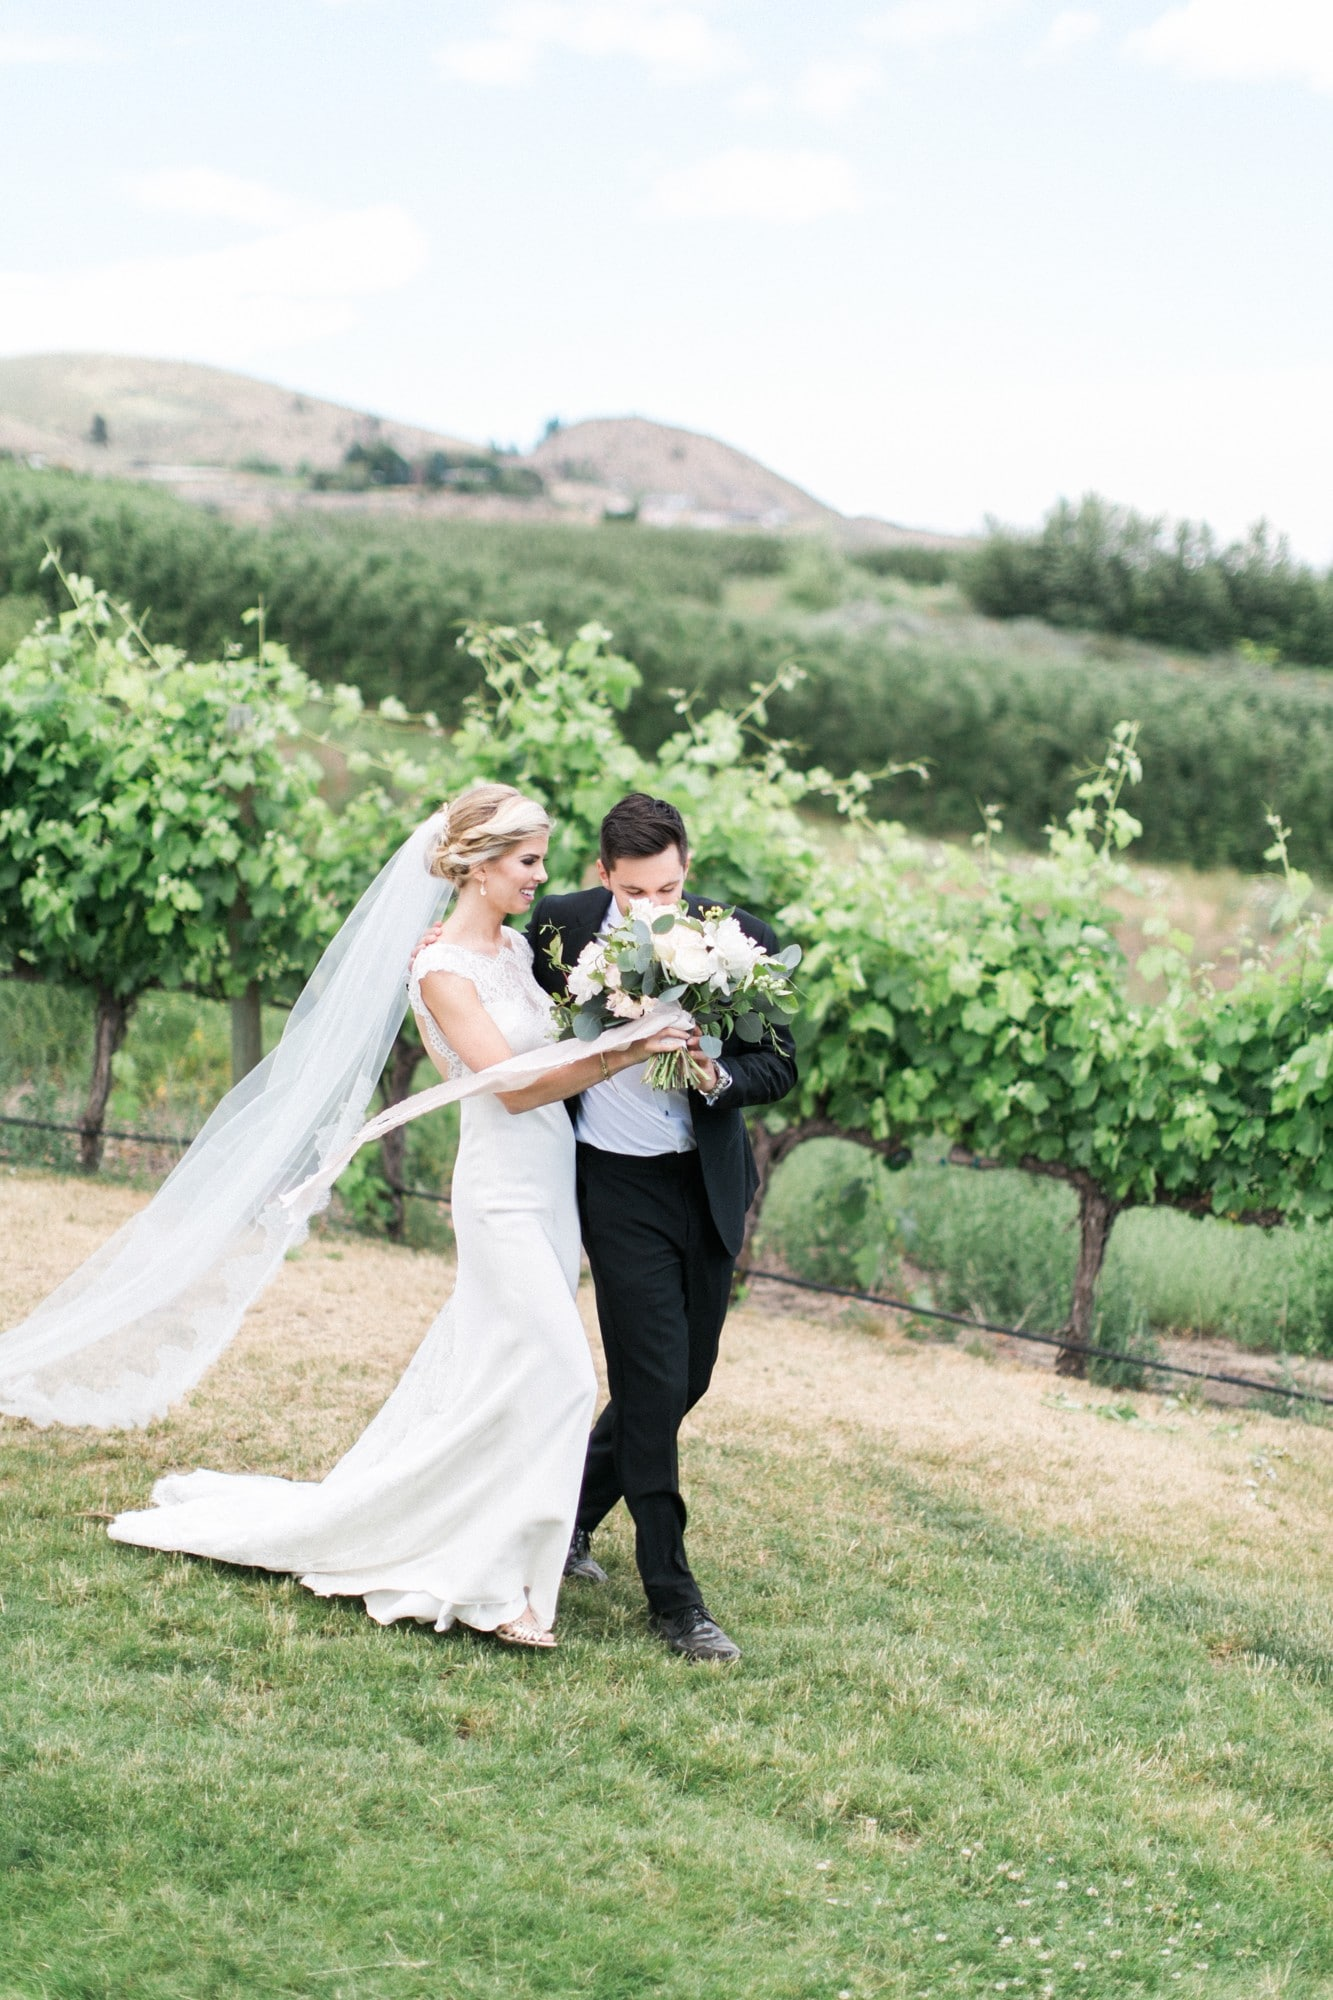 Samuel & Ksenia, Destination wedding it Italy - Matthew Land Studios